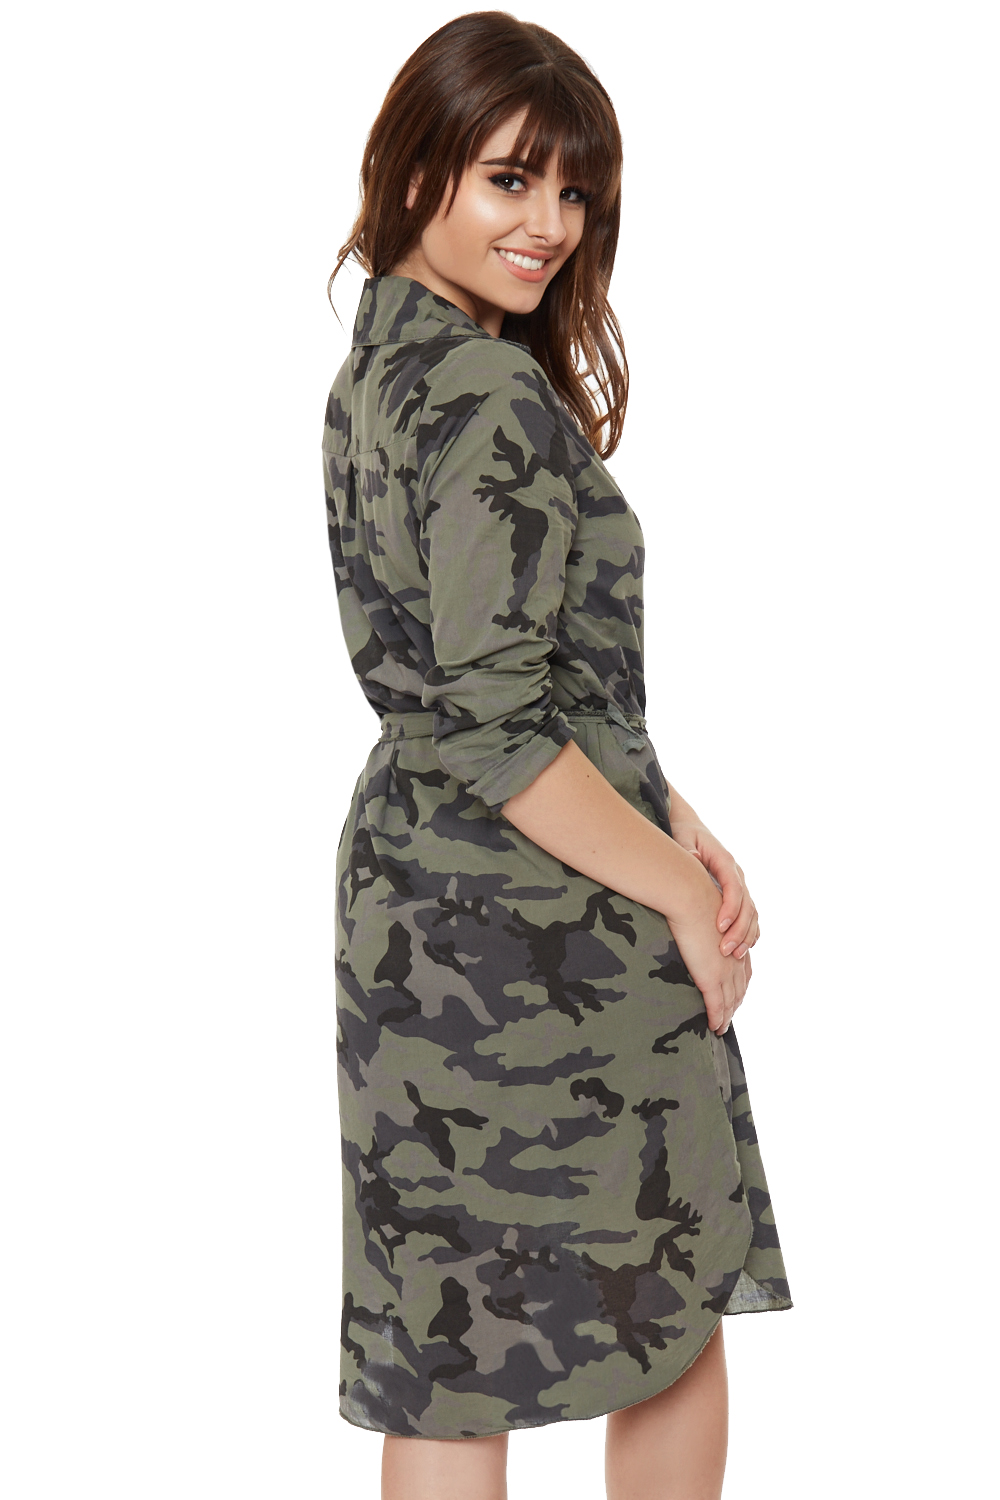 Womens camouflage shirt dress long sleeve button collar Women s long sleeve shirt dress